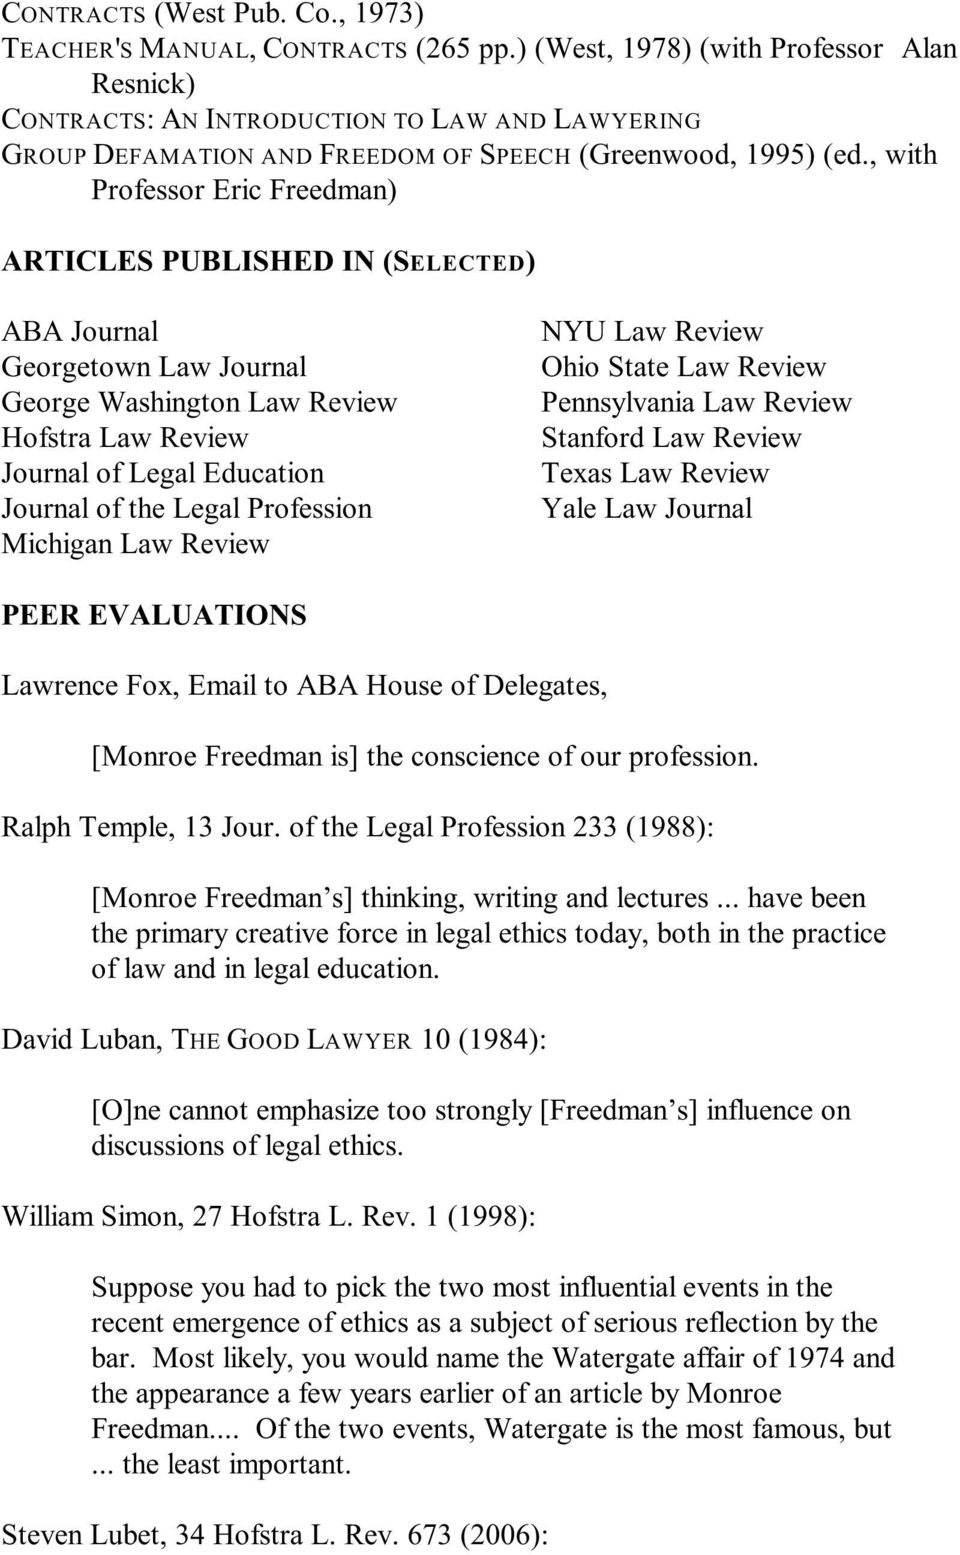 , with Professor Eric Freedman) ARTICLES PUBLISHED IN (SELECTED) ABA Journal NYU Law Review Georgetown Law Journal Ohio State Law Review George Washington Law Review Pennsylvania Law Review Hofstra